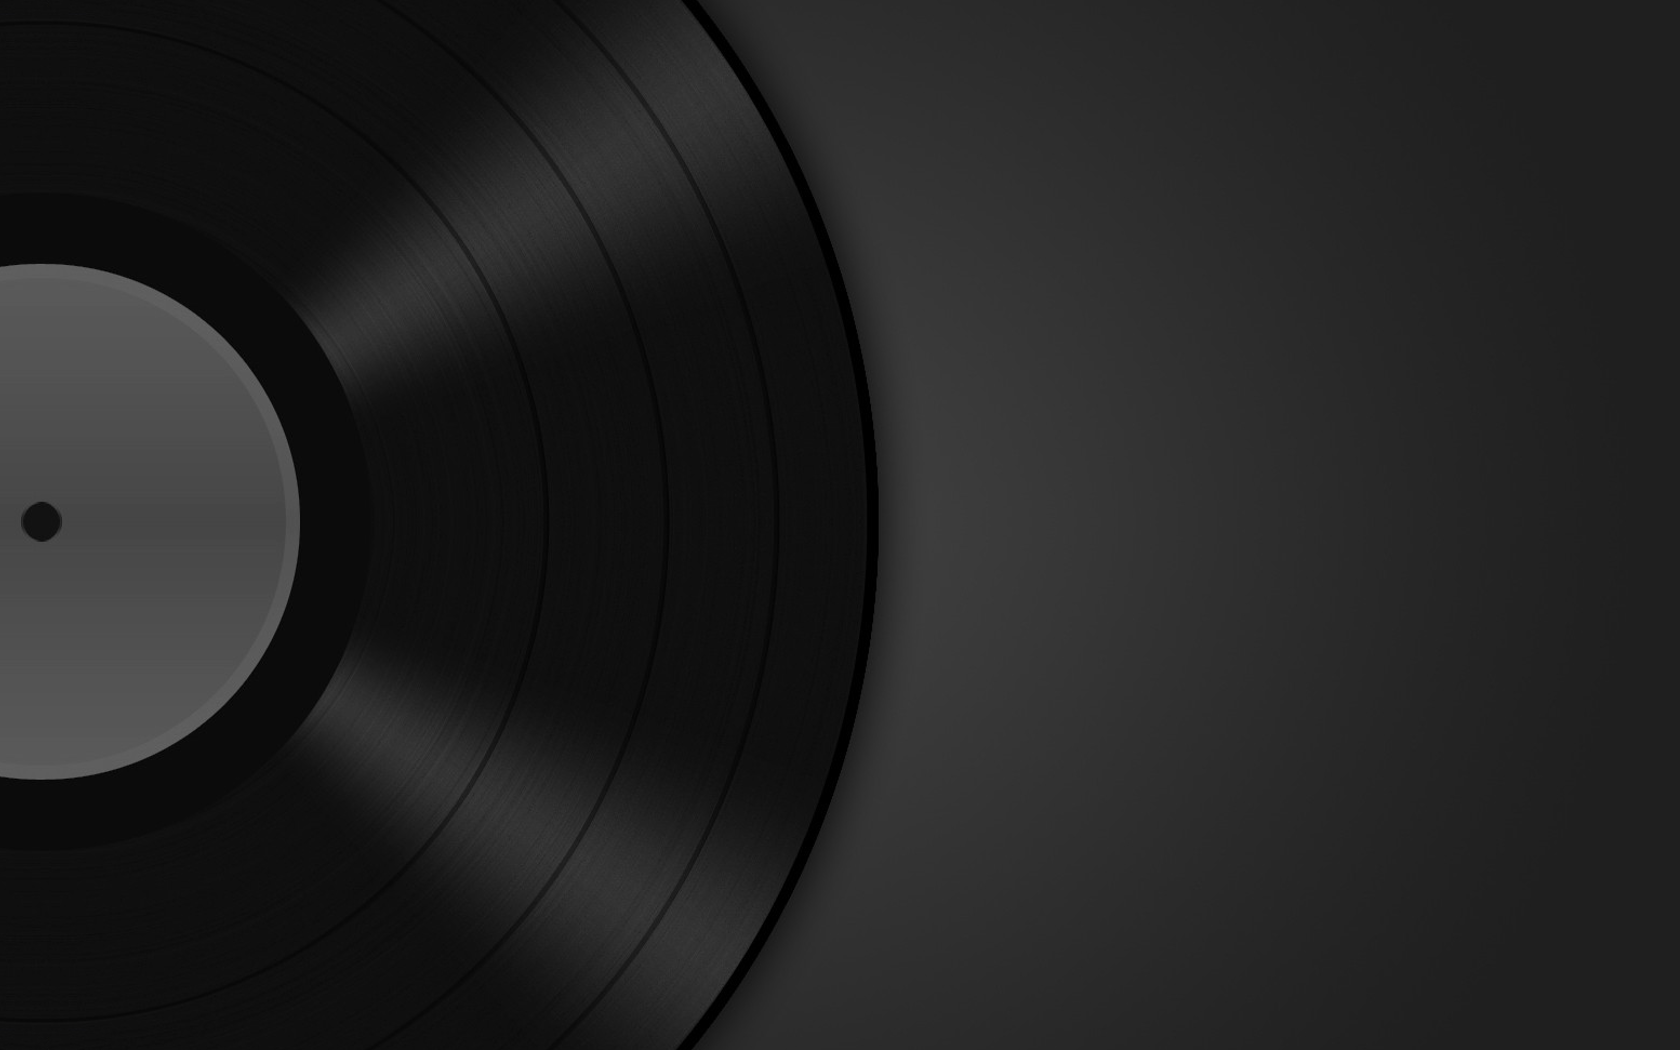 Music Record Wallpaper 1680x1050 Music Record Vynil 1680x1050